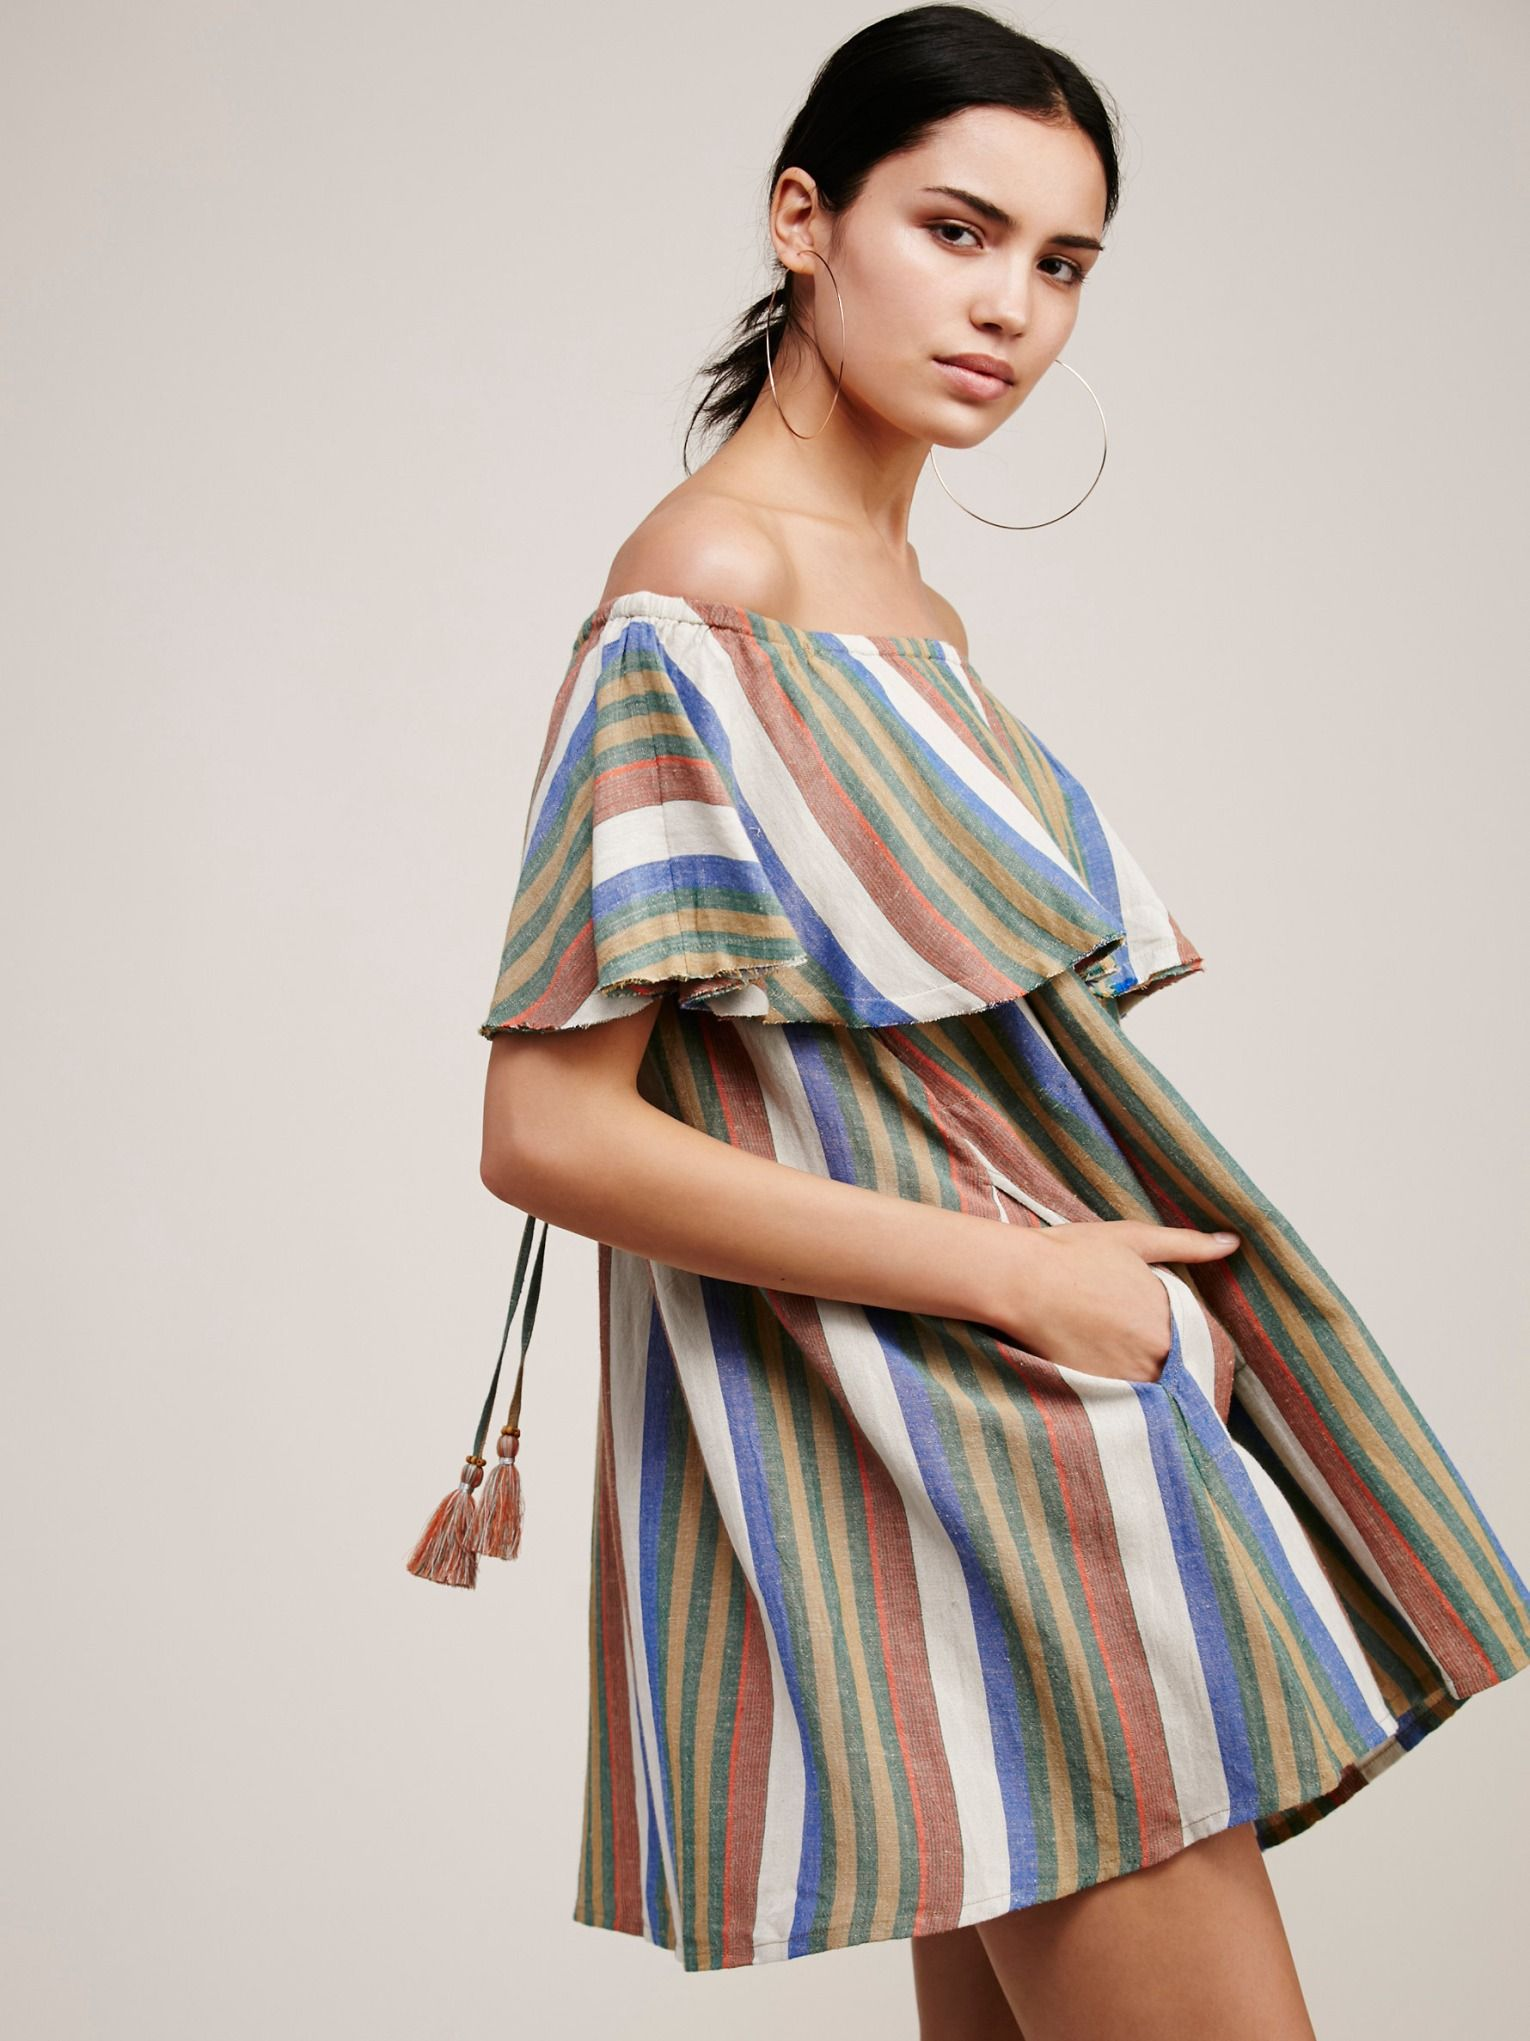 Free People Serefina Stripe | Clothing boutiques and Free people